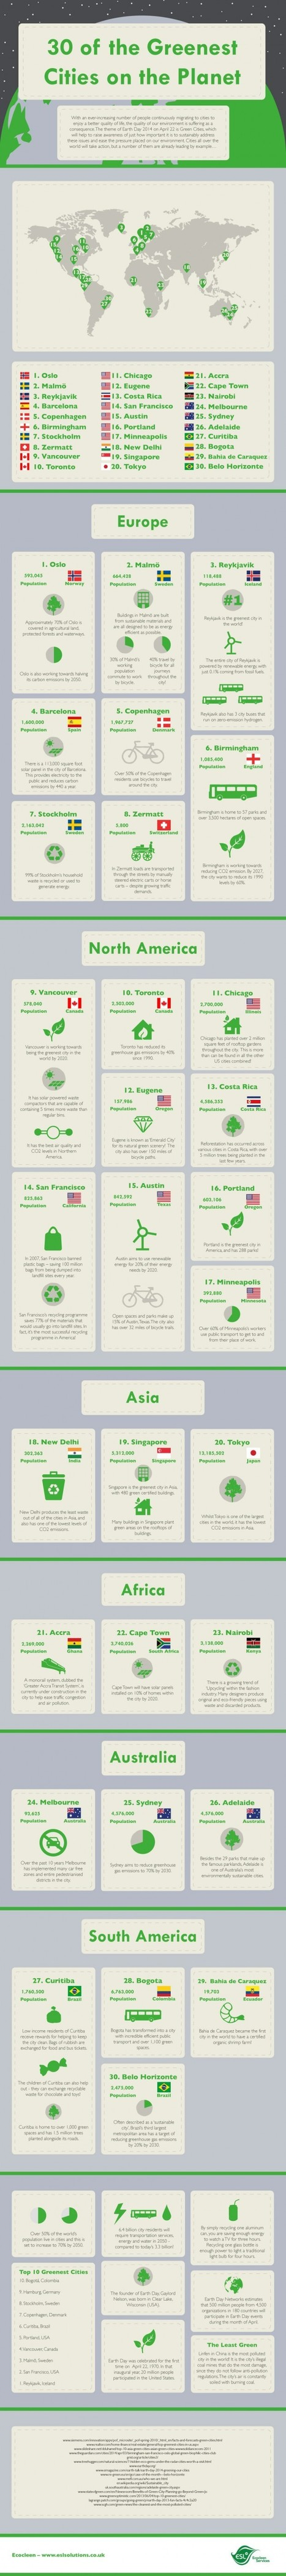 The World's 30 Greenest Cities - Infographic | New learning | Scoop.it